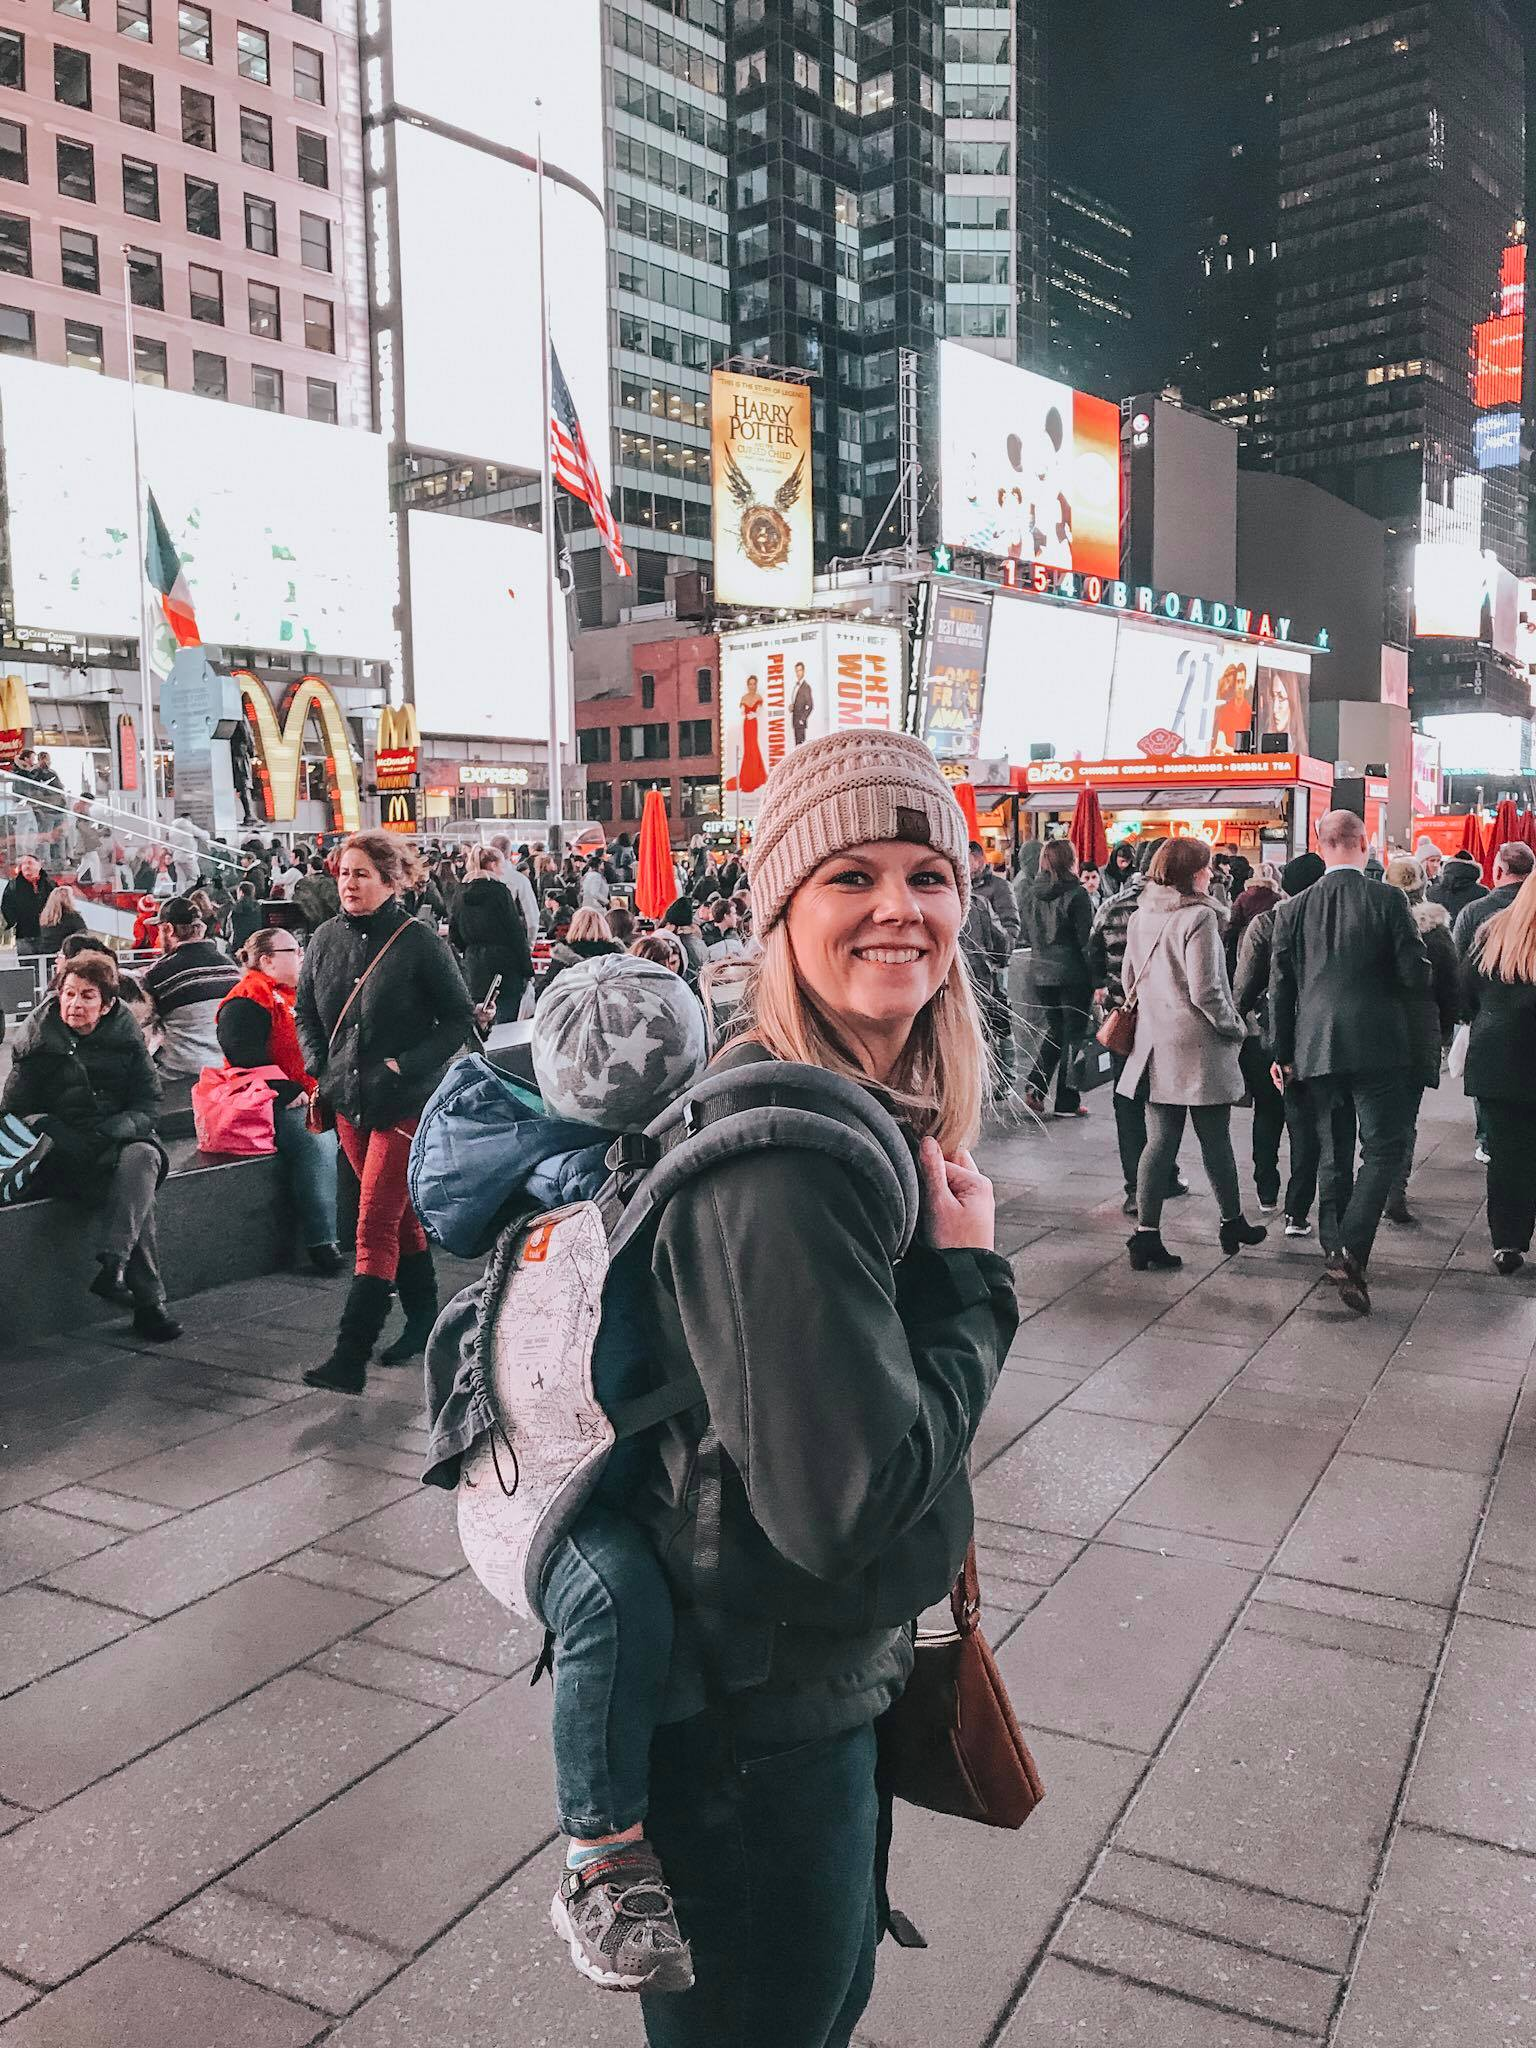 Times Square is a busy, but iconic place. I loved experiencing the bright lights and energy!